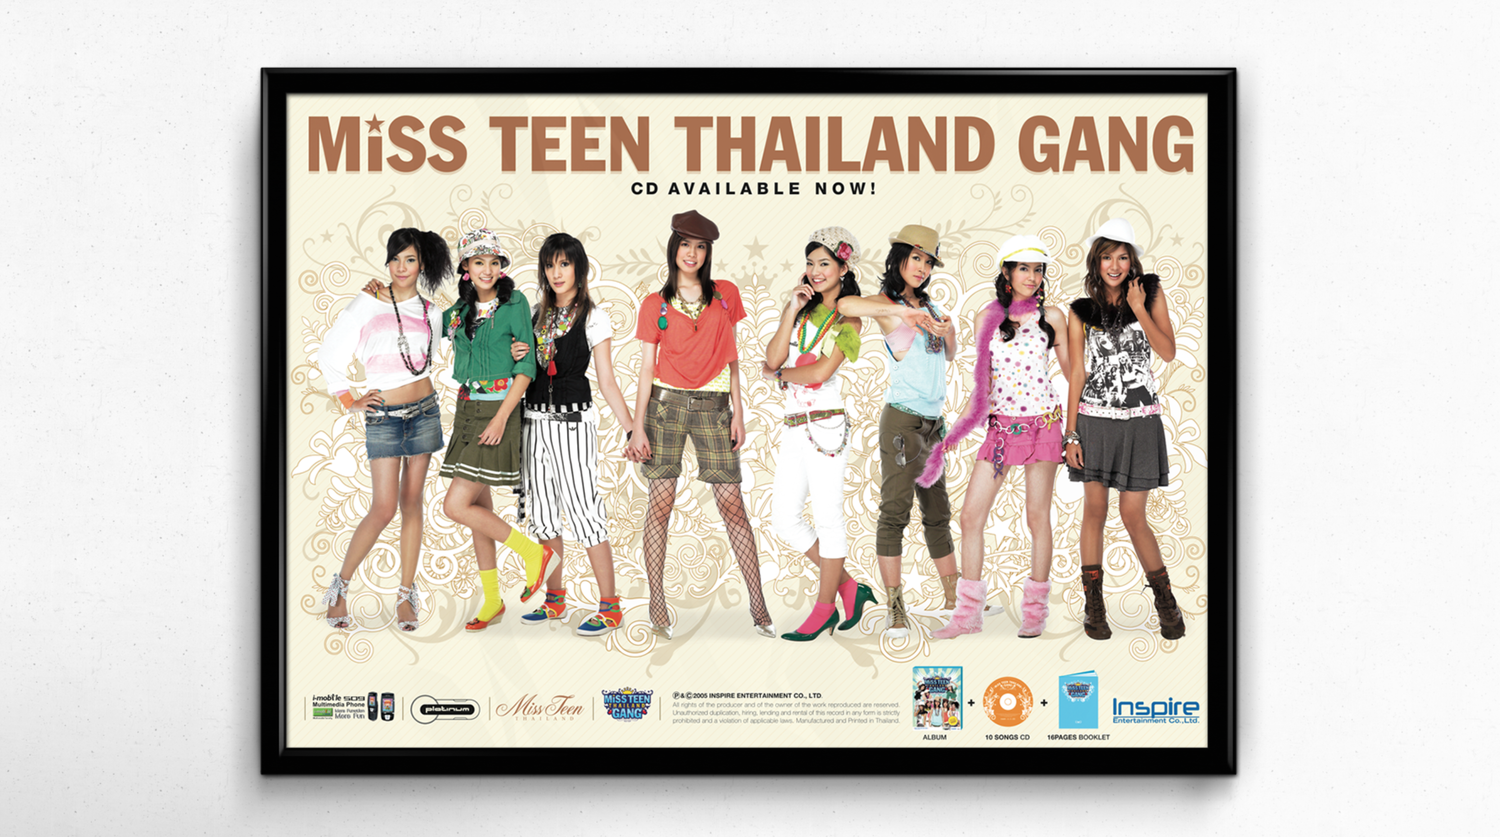 Promotional poster for Miss Teen Thailand Gang Album.